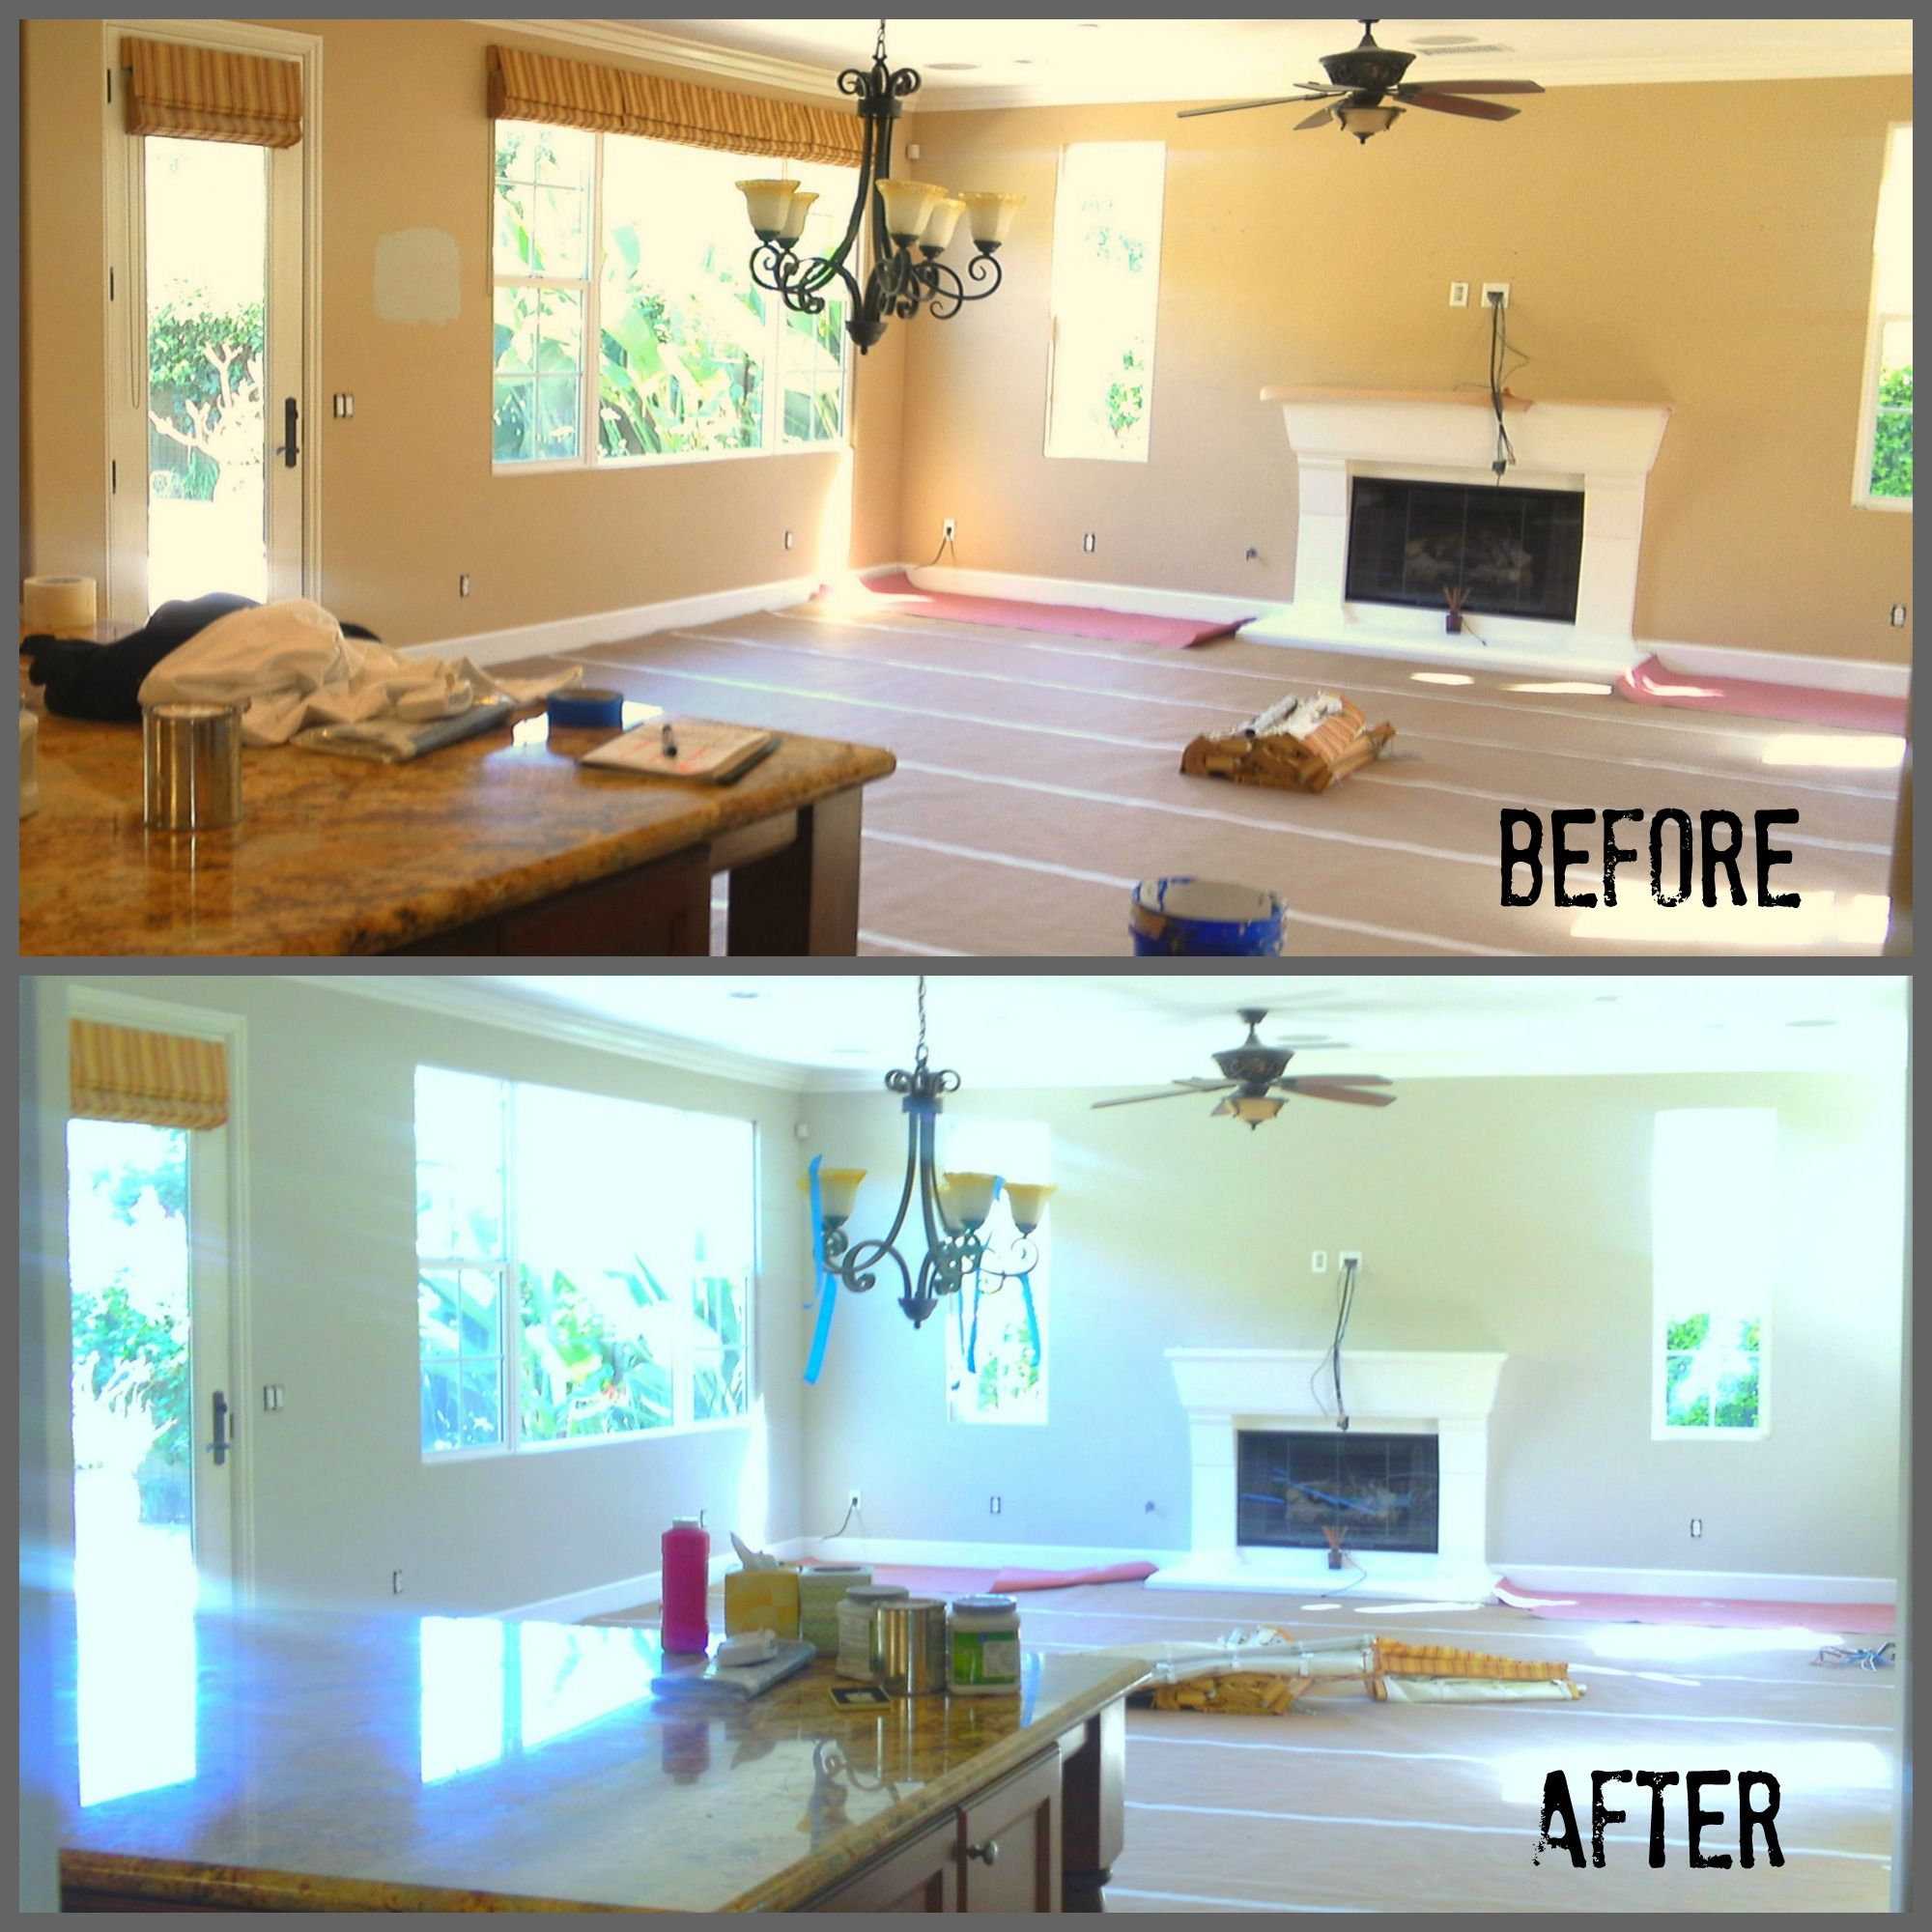 La costa interior repaint by maverick painting san diego - Sherwin williams interior paint finishes ...